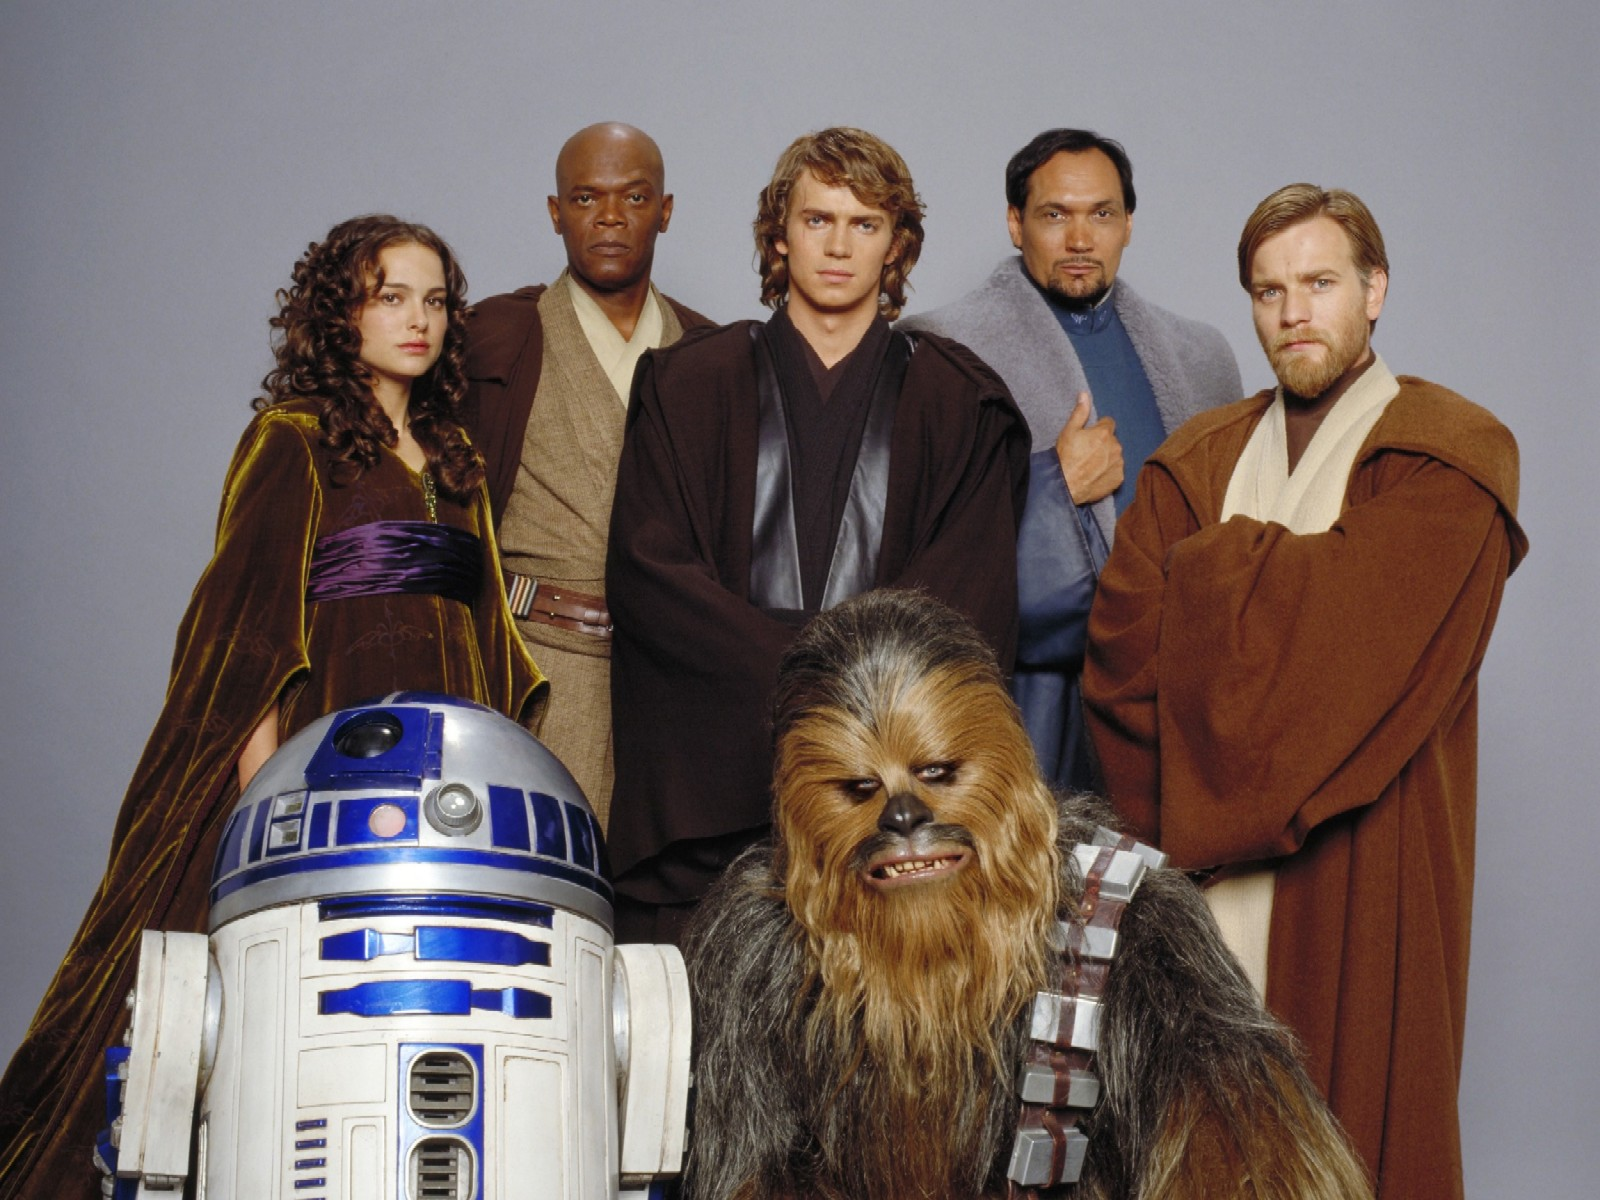 Star Wars Episode III: Revenge of the Sith - Wookieepedia, the ...